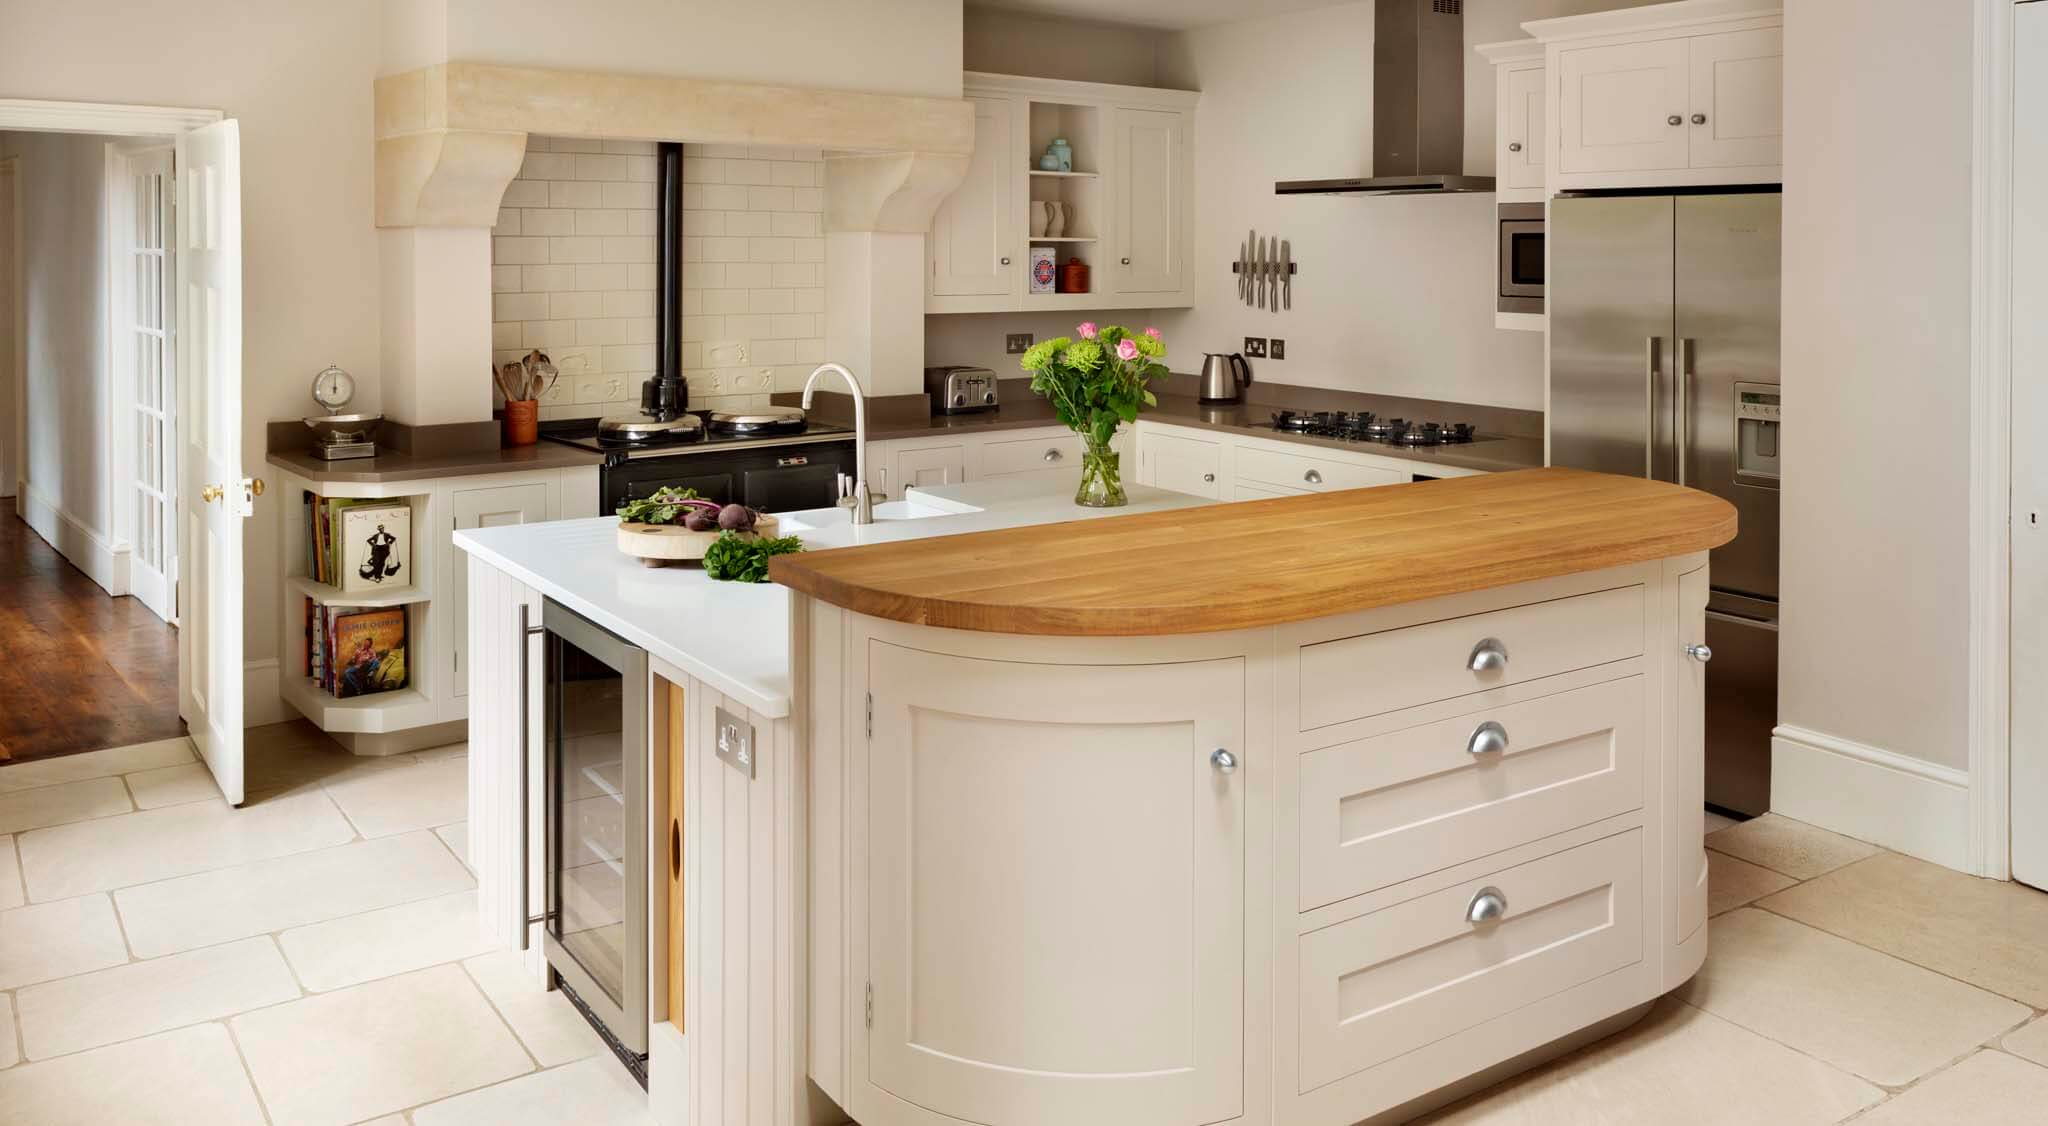 Painted Shaker Kitchen With Curved Island